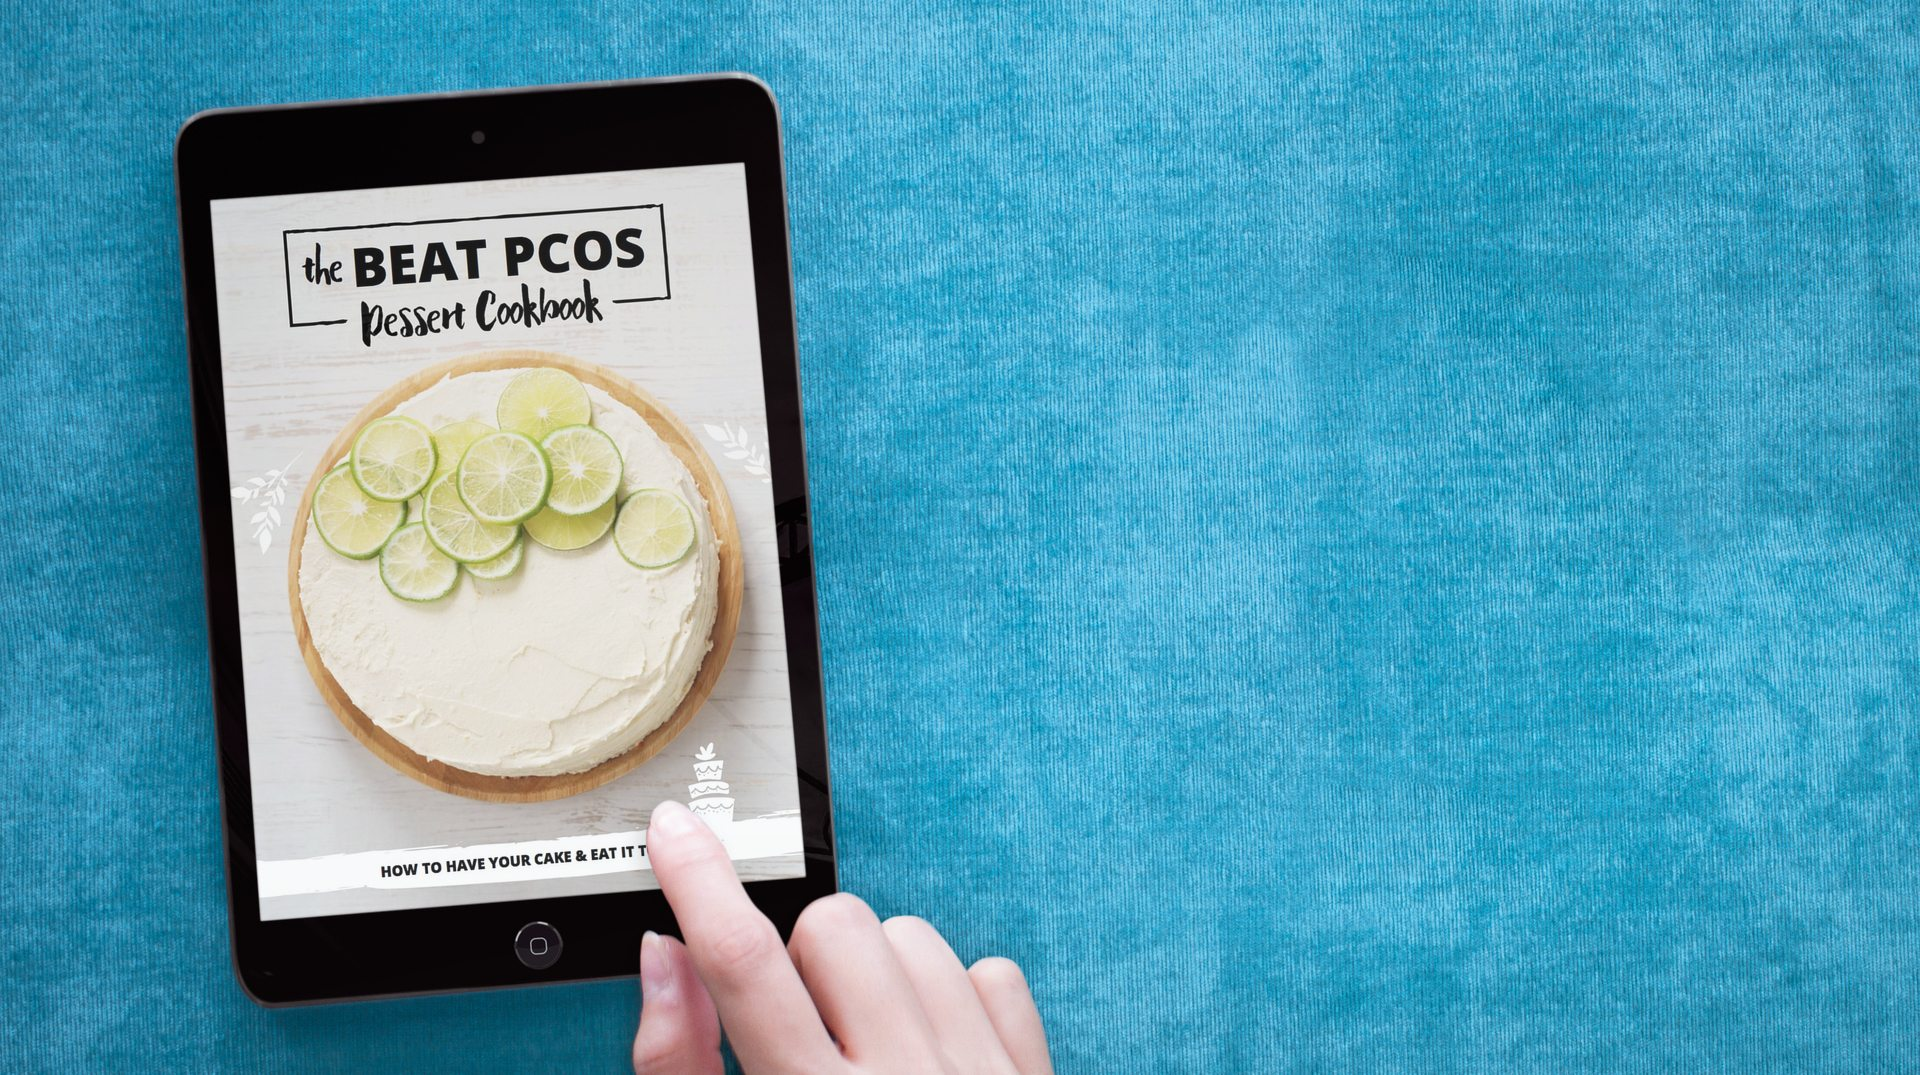 The best pcos dessert recipes cookbook youll find online 800 usd fandeluxe